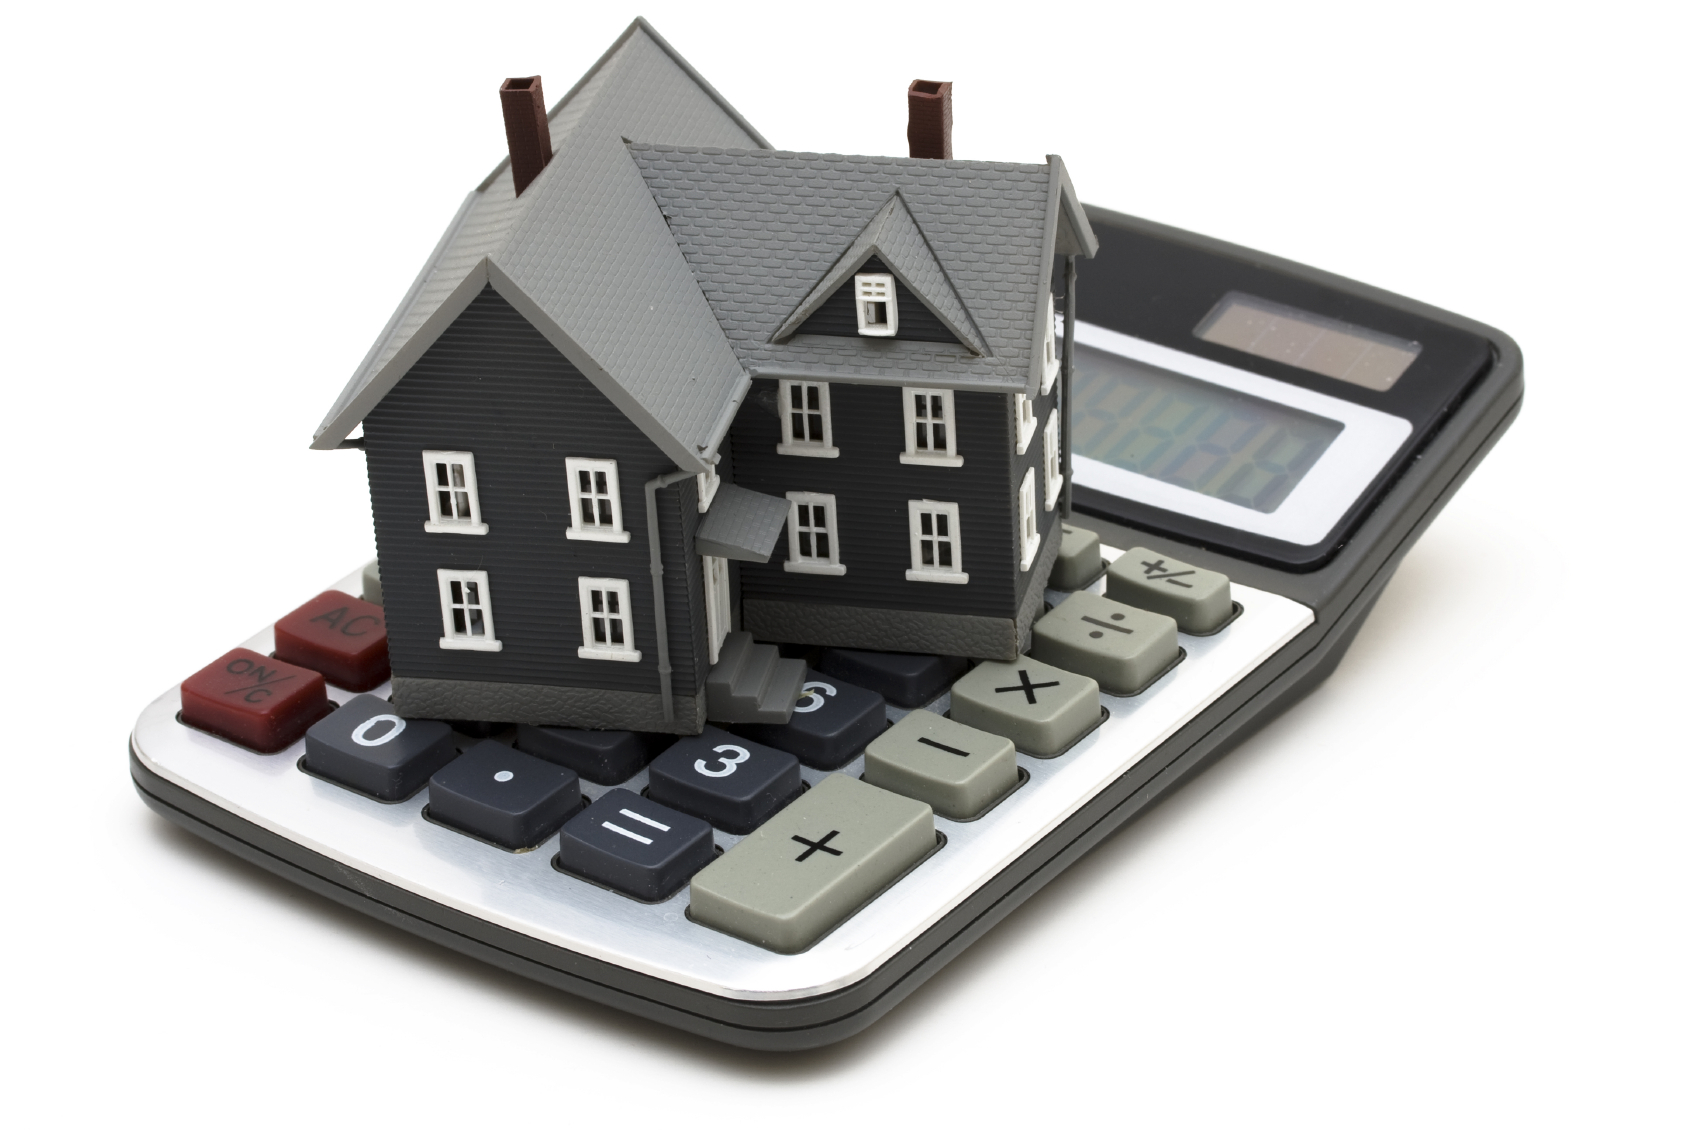 Additional Things To Evaluate When Looking For A New House